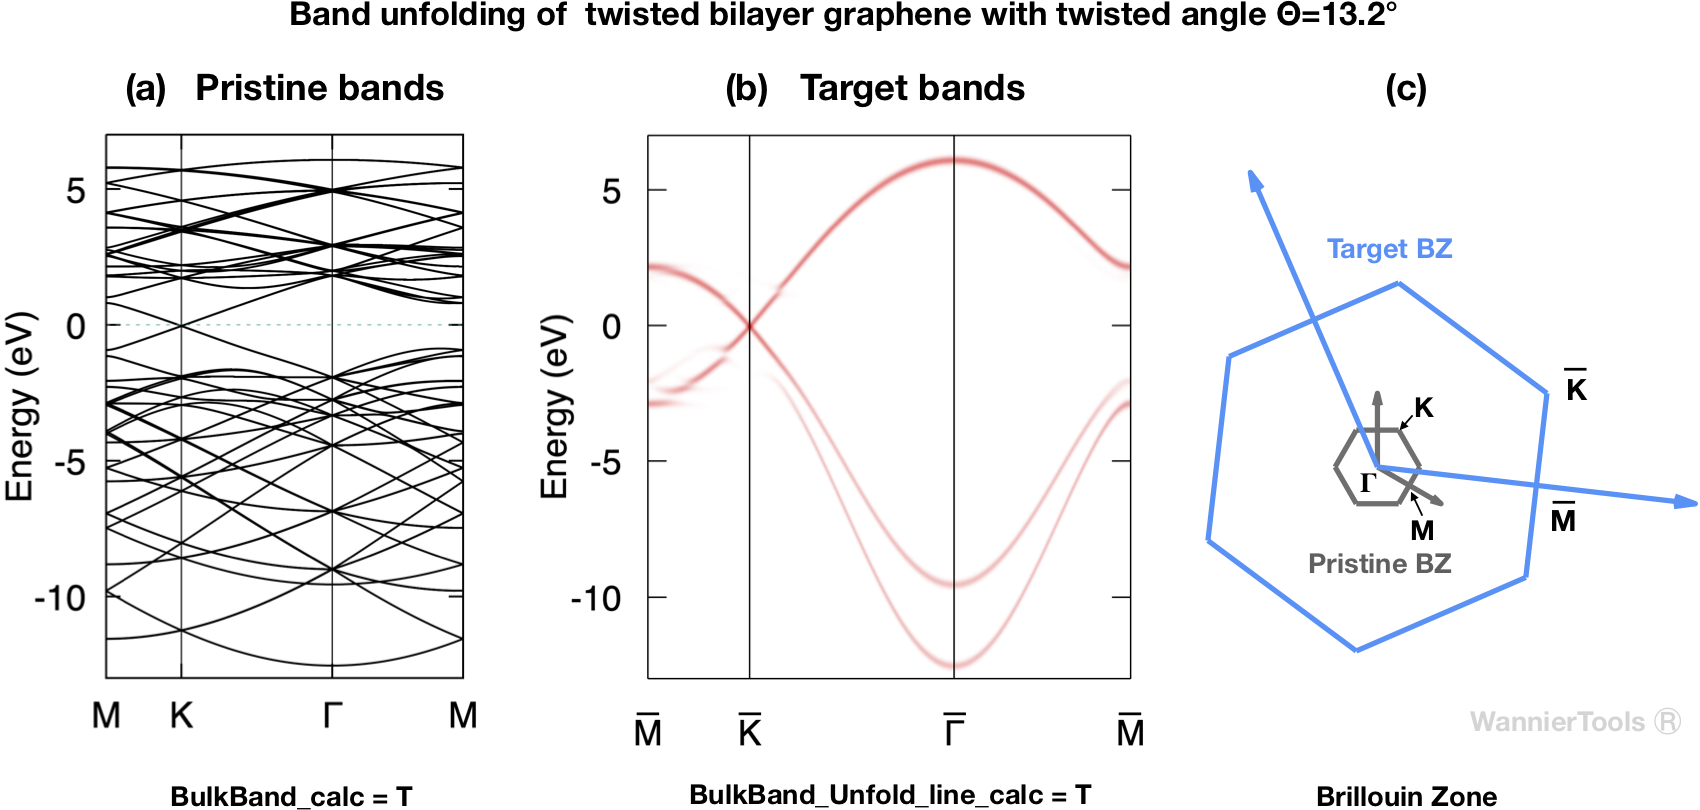 Pristine bands (a) and unfolded bands (b) of twisted bilayer graphene with twisted angle theta=13.2degree.